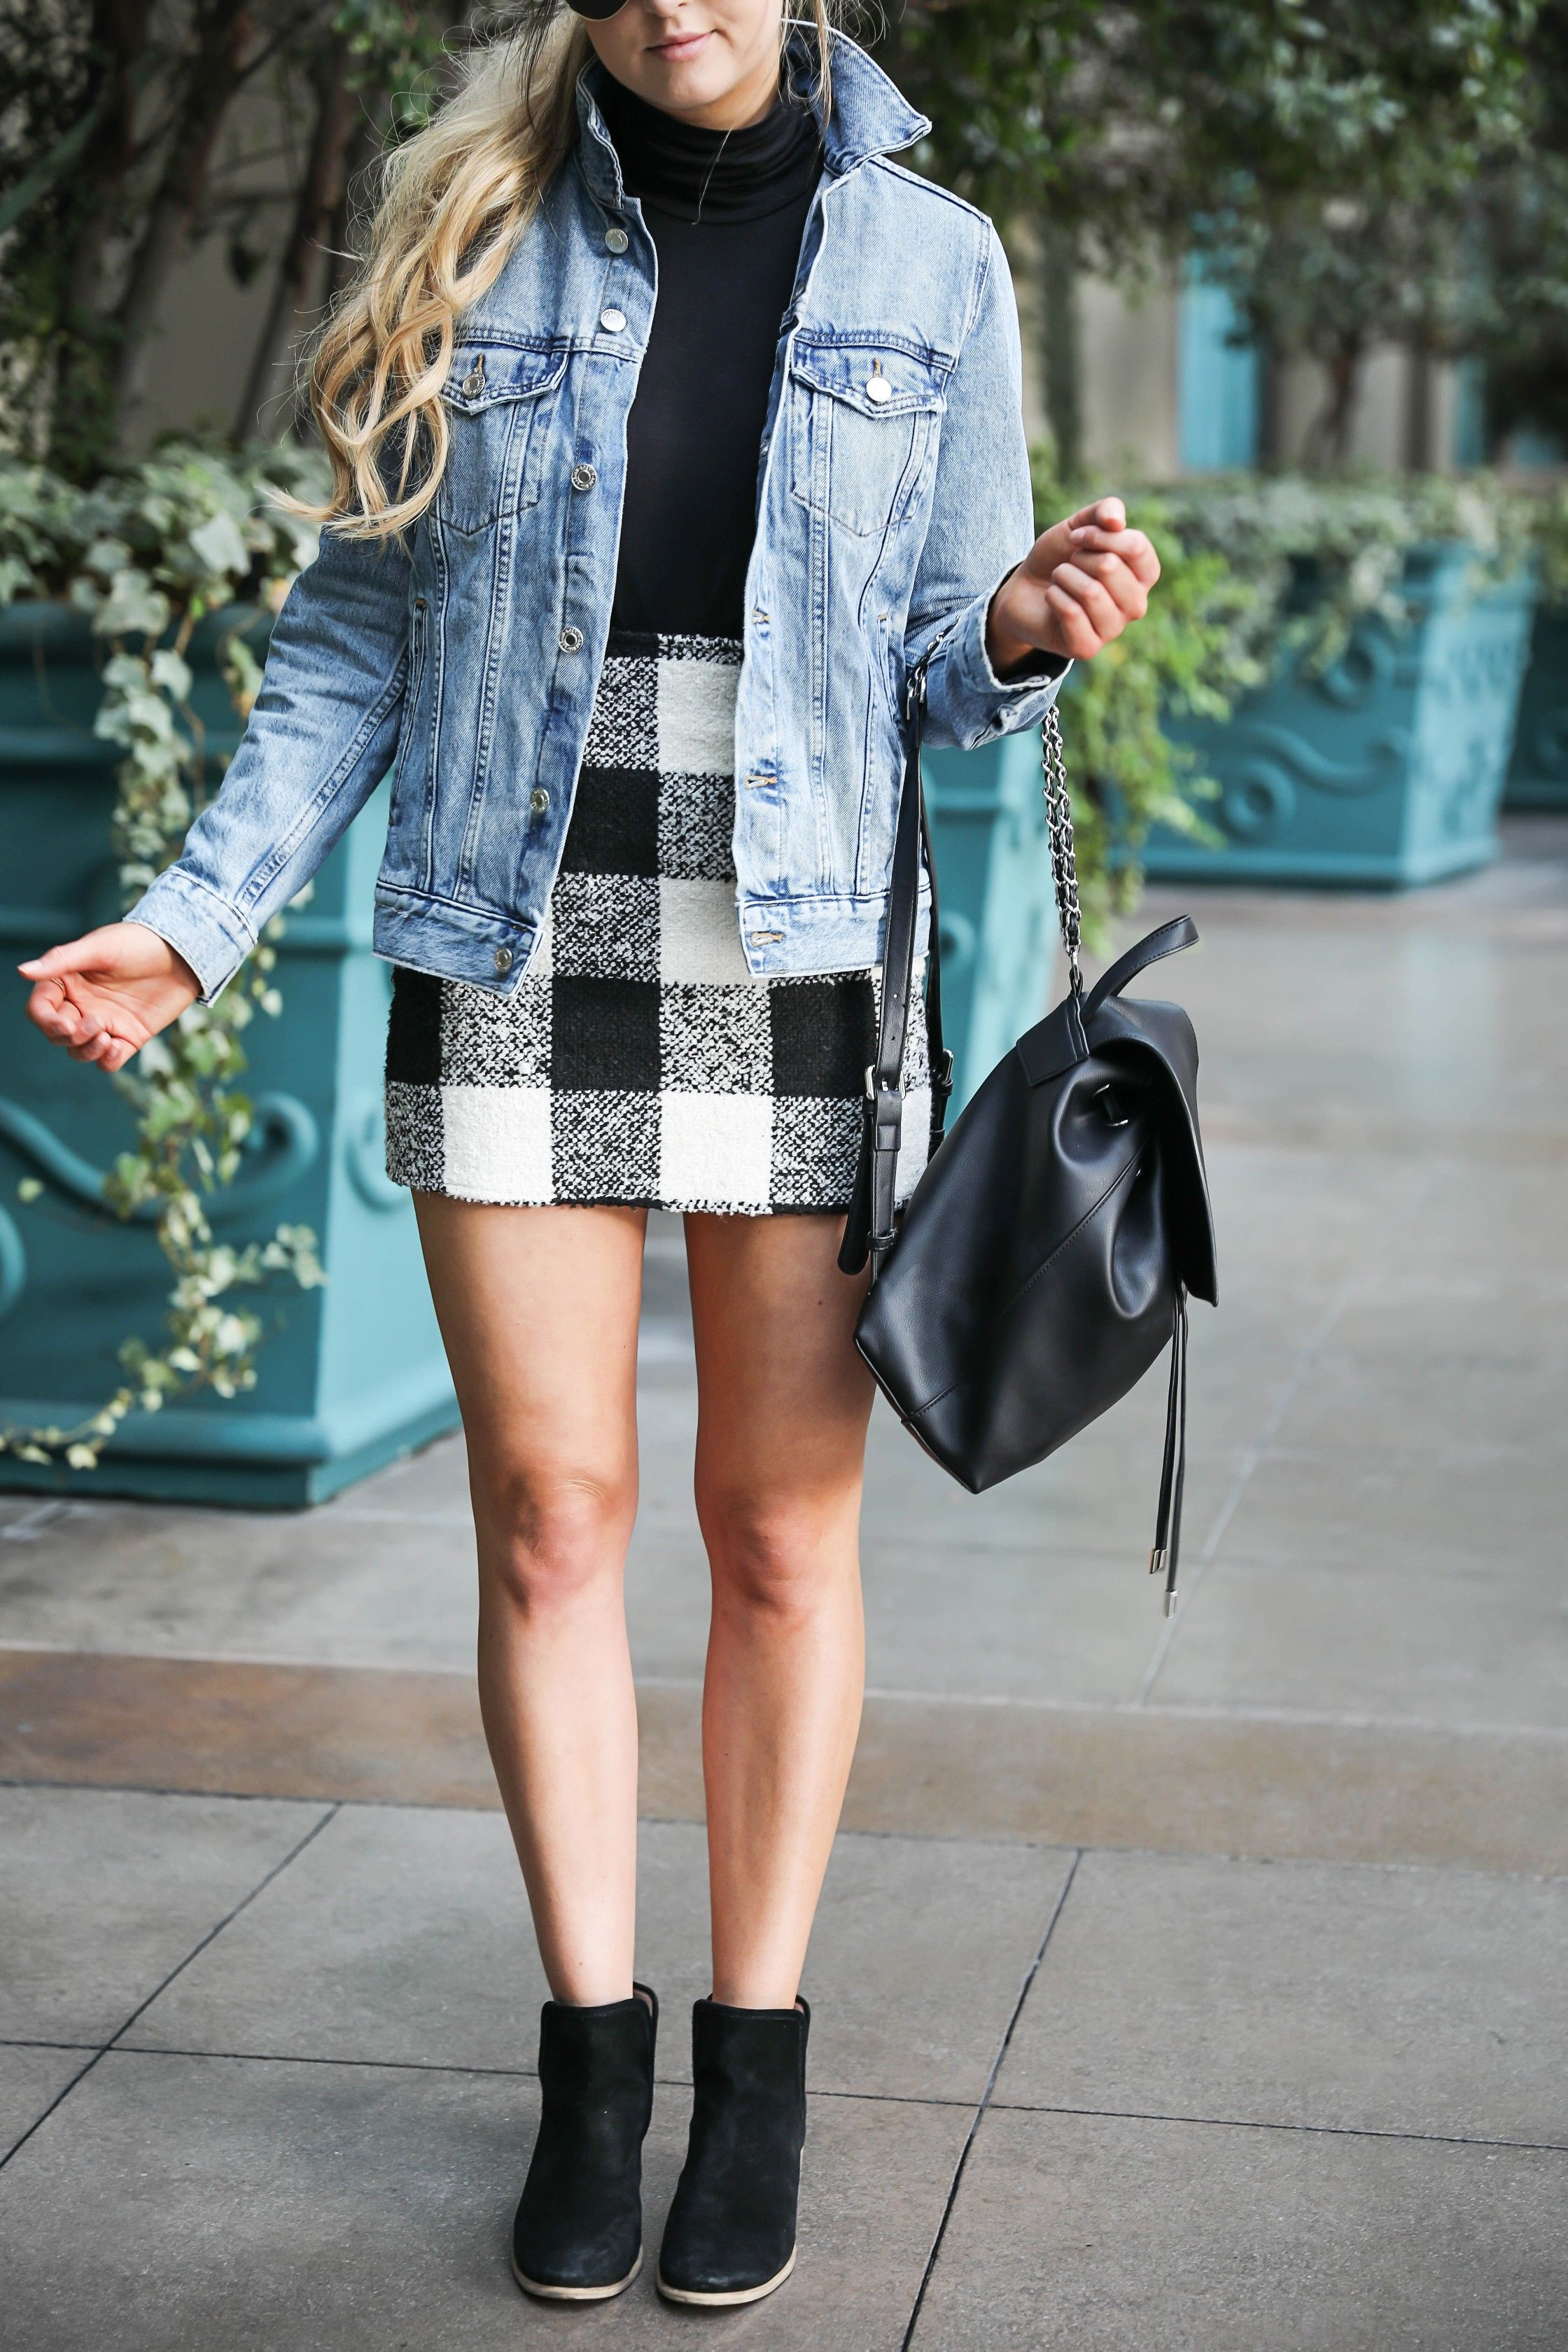 Jean Jacket And Plaid Skirt At The Venetian Hotel Casino In Las Vegas Details On Fashion Blog Daily Dose Of Charm B Plaid Skirts Shopping Outfit Jean Jacket [ 3360 x 2240 Pixel ]